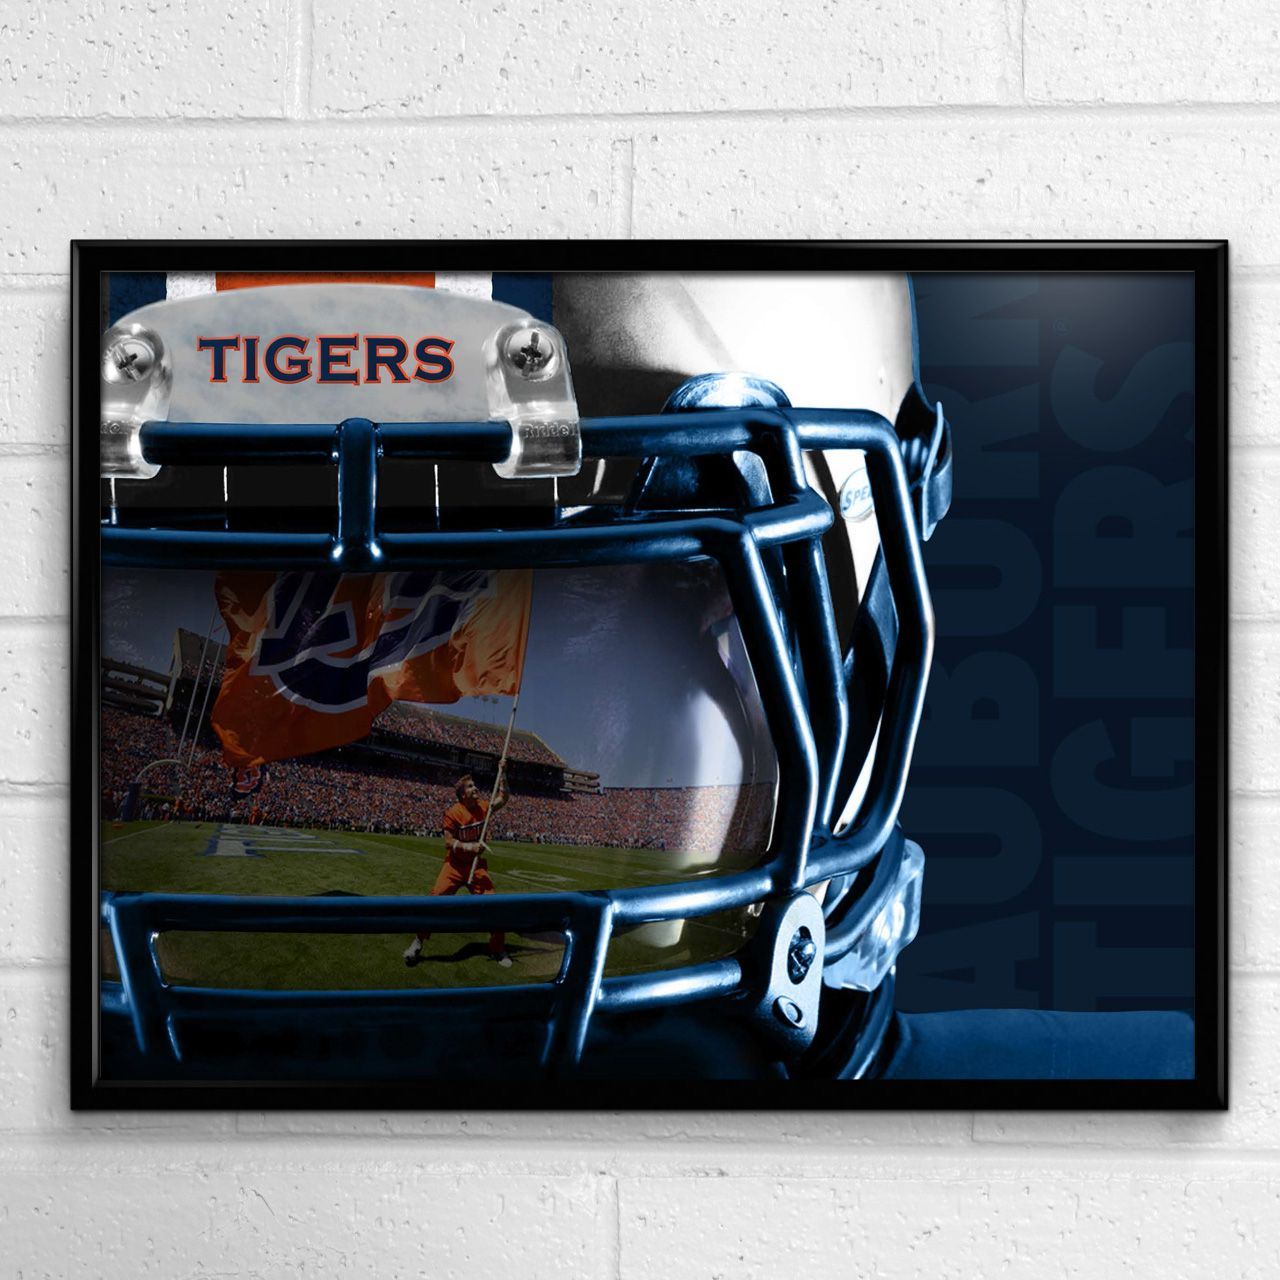 The Team Spirit Store is the official online source for the Auburn Tigers Reflection poster and other authentic Auburn merchandise and game day gear